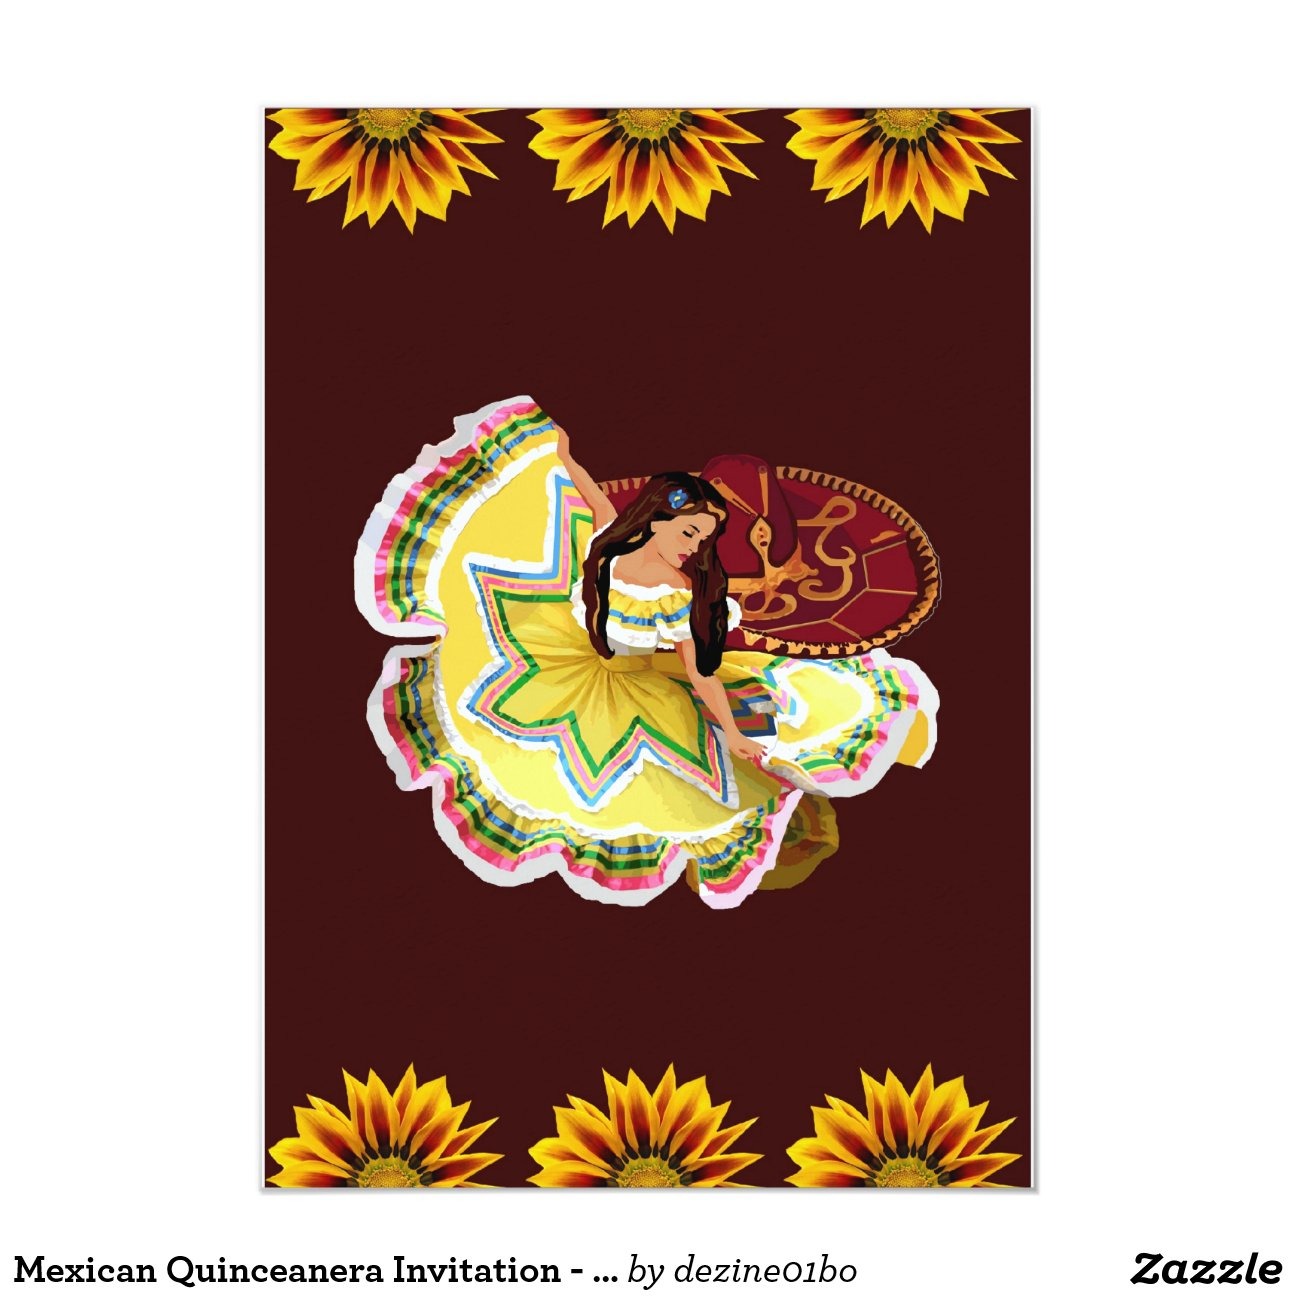 "Mexican Quinceanera Invitation - Burgundy 5"" X 7 ..."